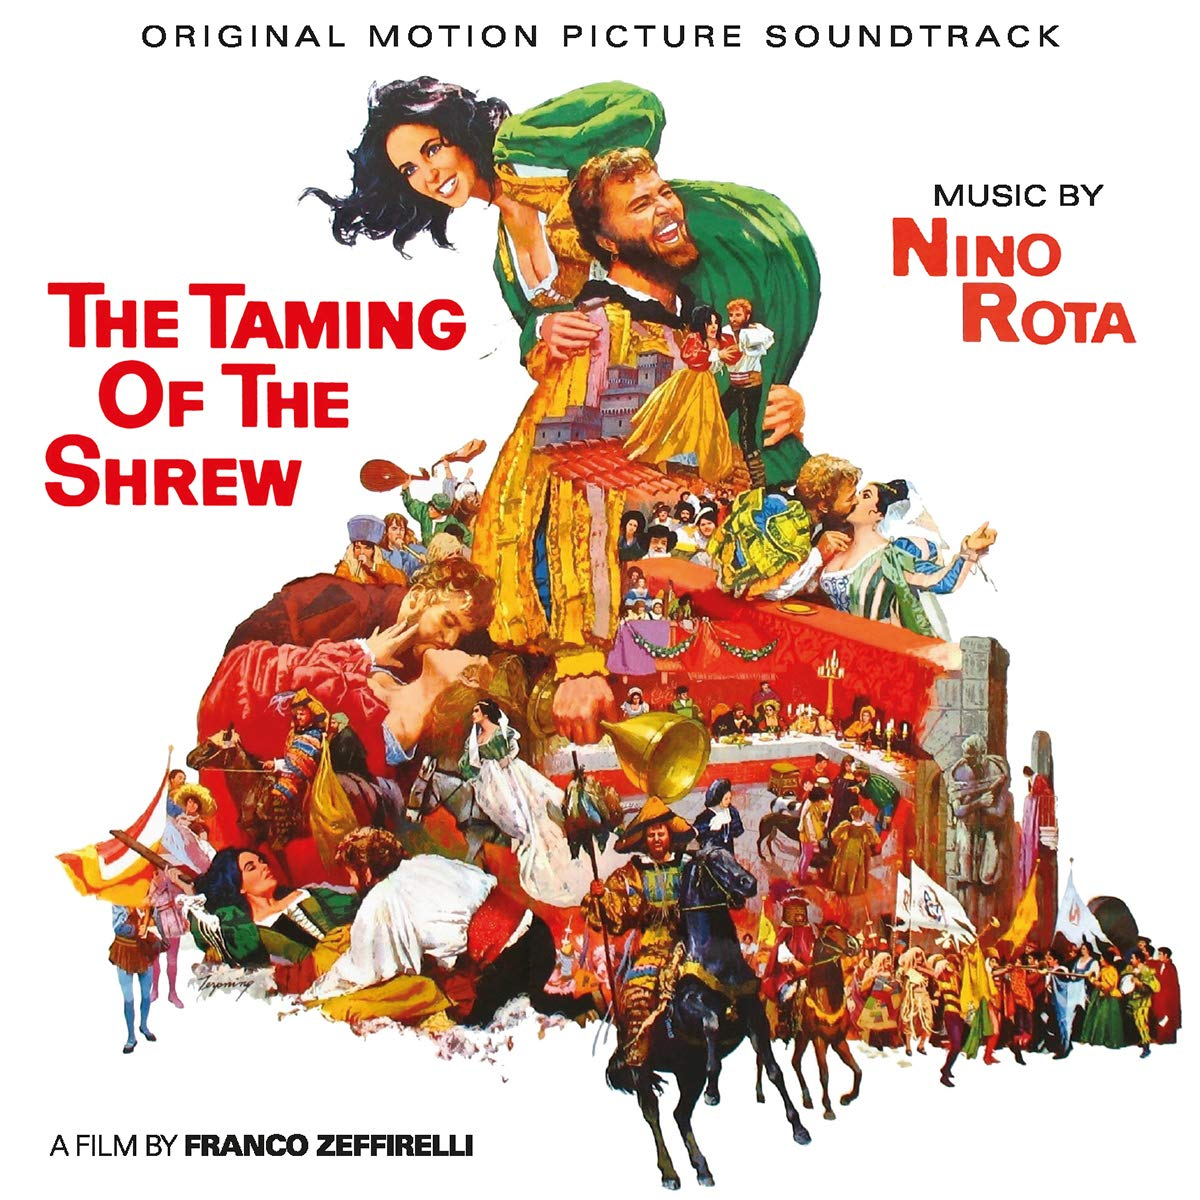 Bisbetica domata (La) - The taming of the shrew (1967)